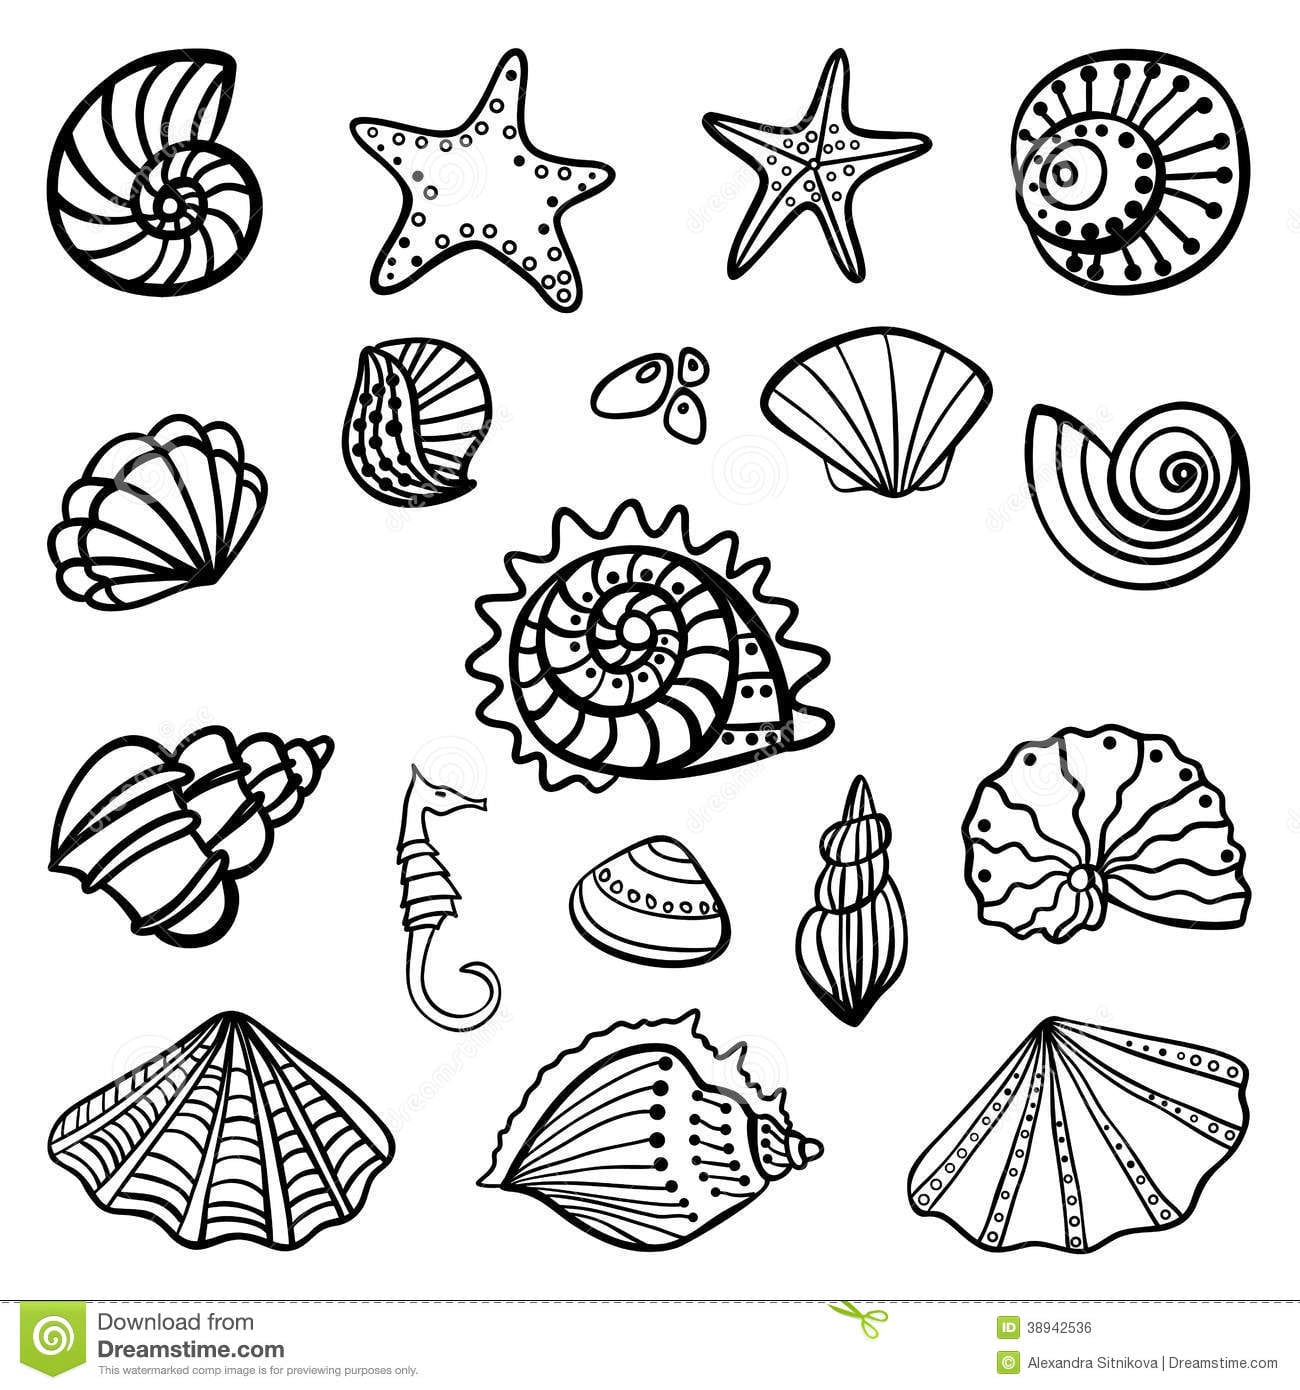 Shell Coloring Pages To Download And Print For Free